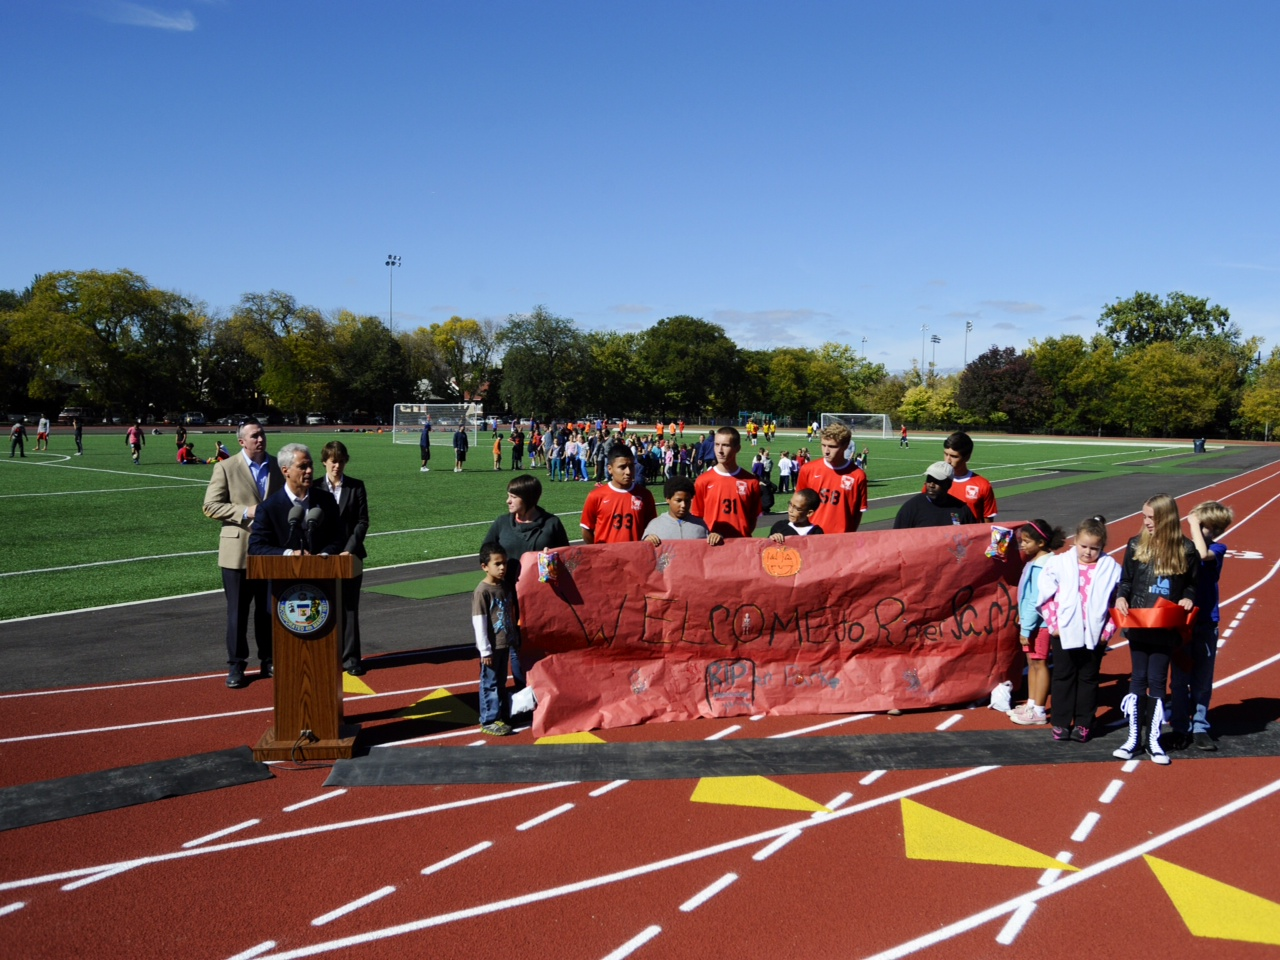 Mayor Rahm Emanuel, Alderman Deborah Mell (33rd Ward) and members of the Lincoln Square community gathered today at the site of a new artificial turf field and running track at River Park to highlight on going investments being made in the Lincoln Square community.